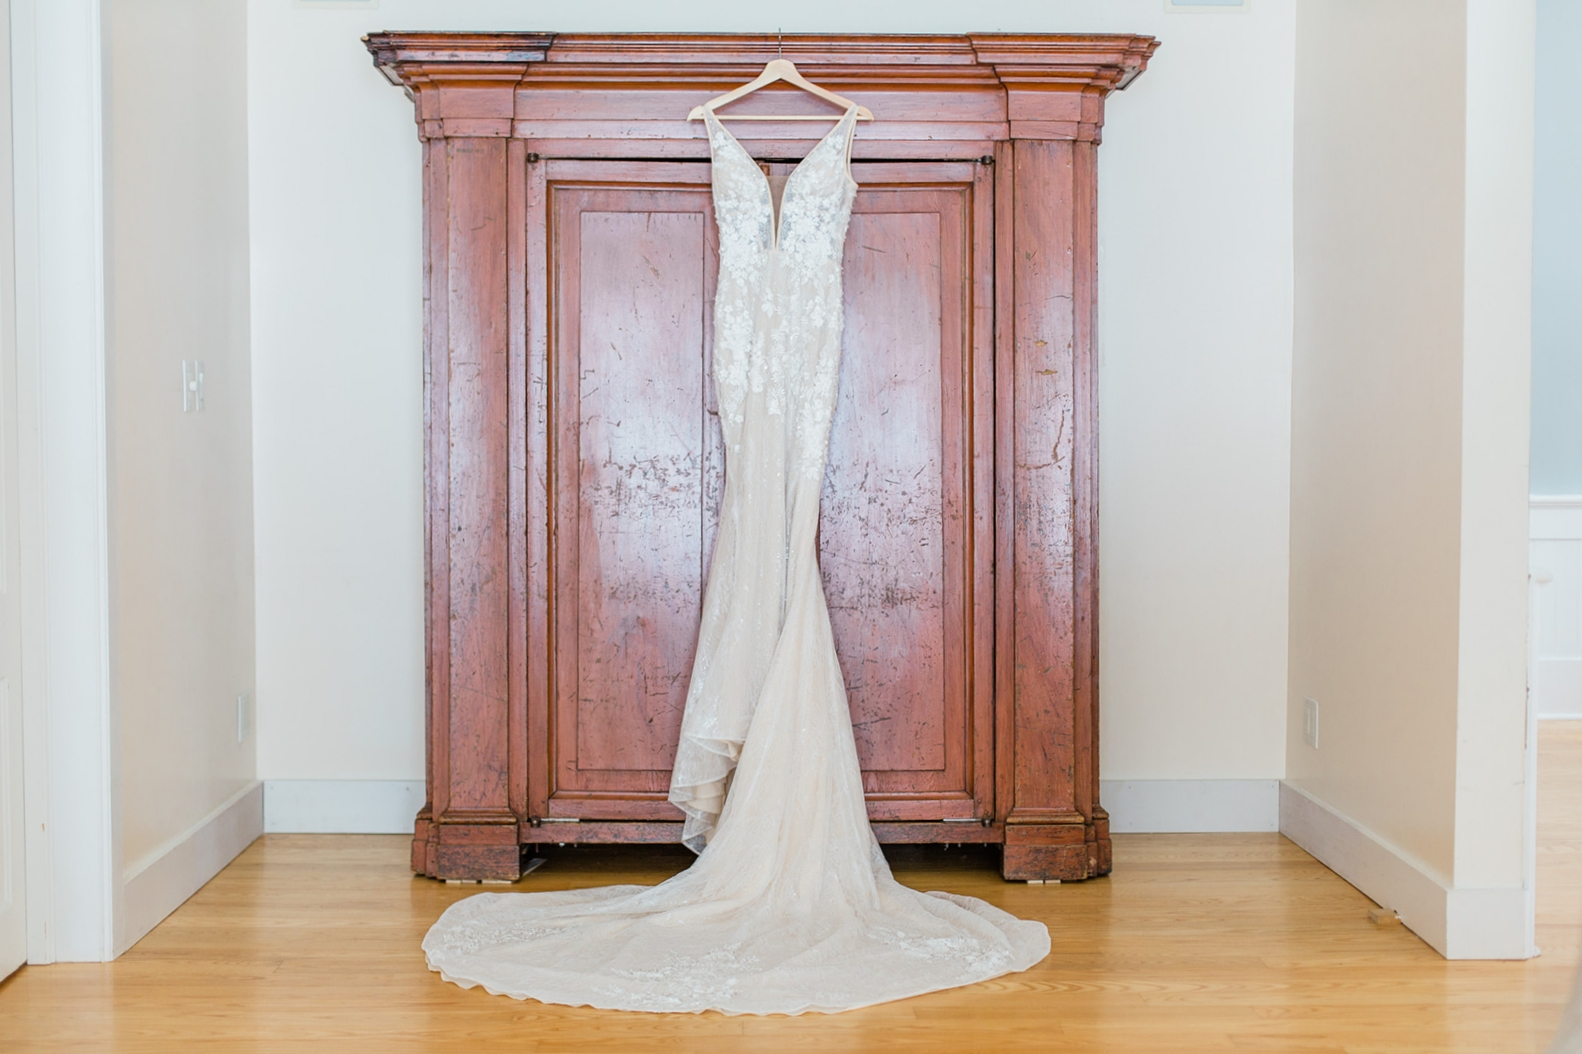 court train peach toned wedding dress hanging photo